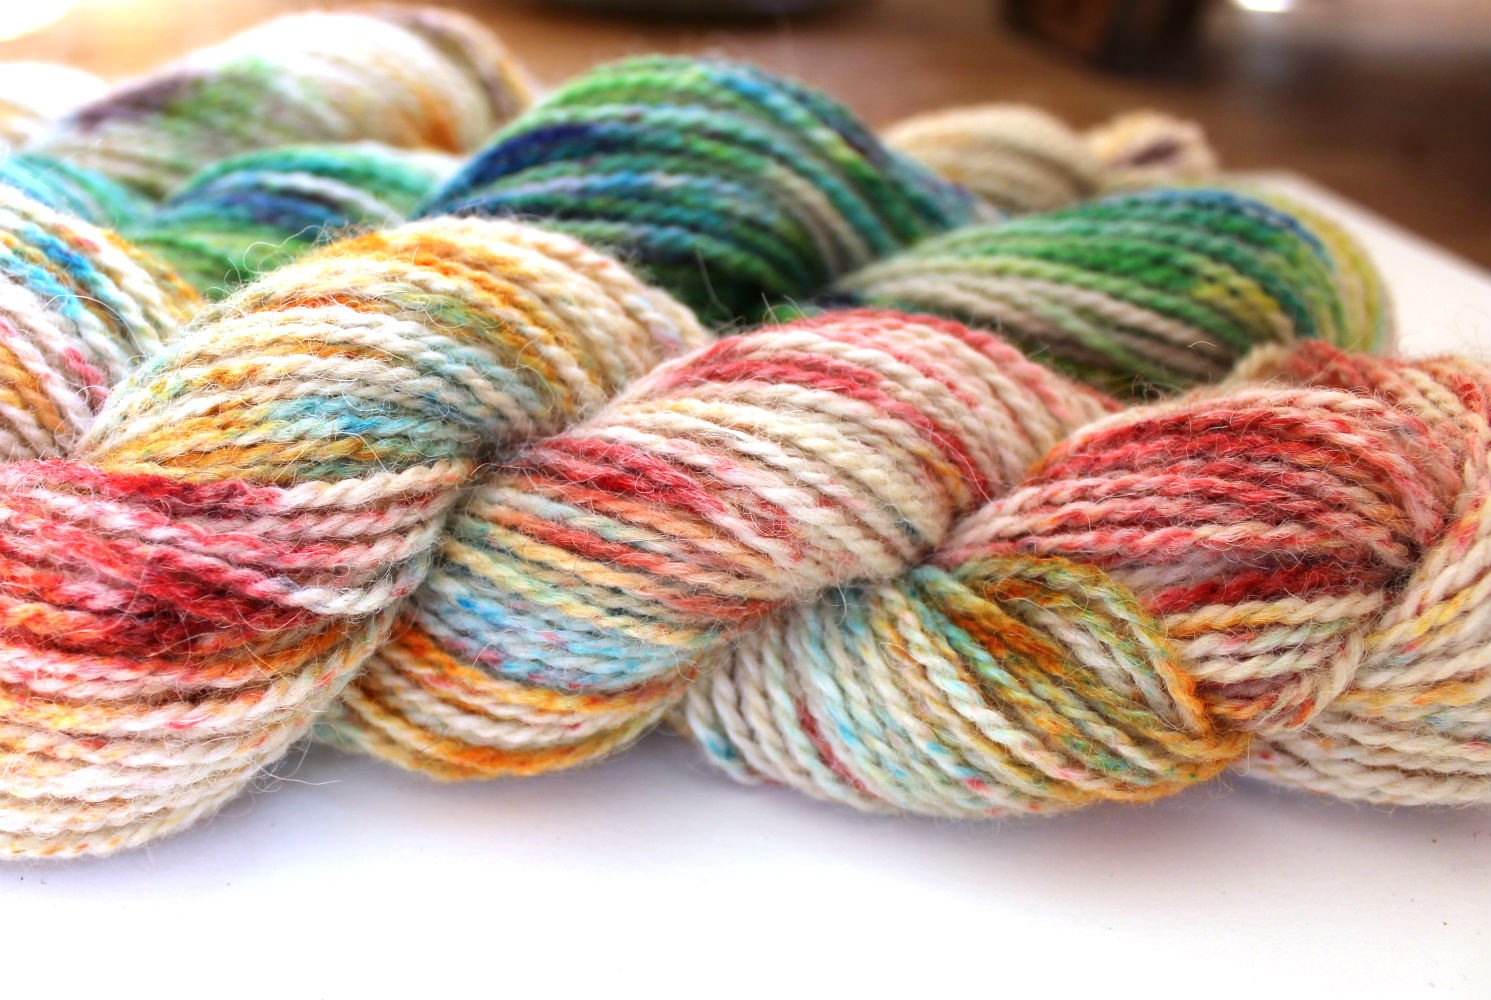 Speckle Dyed or Sprinkle Dyed Yarn